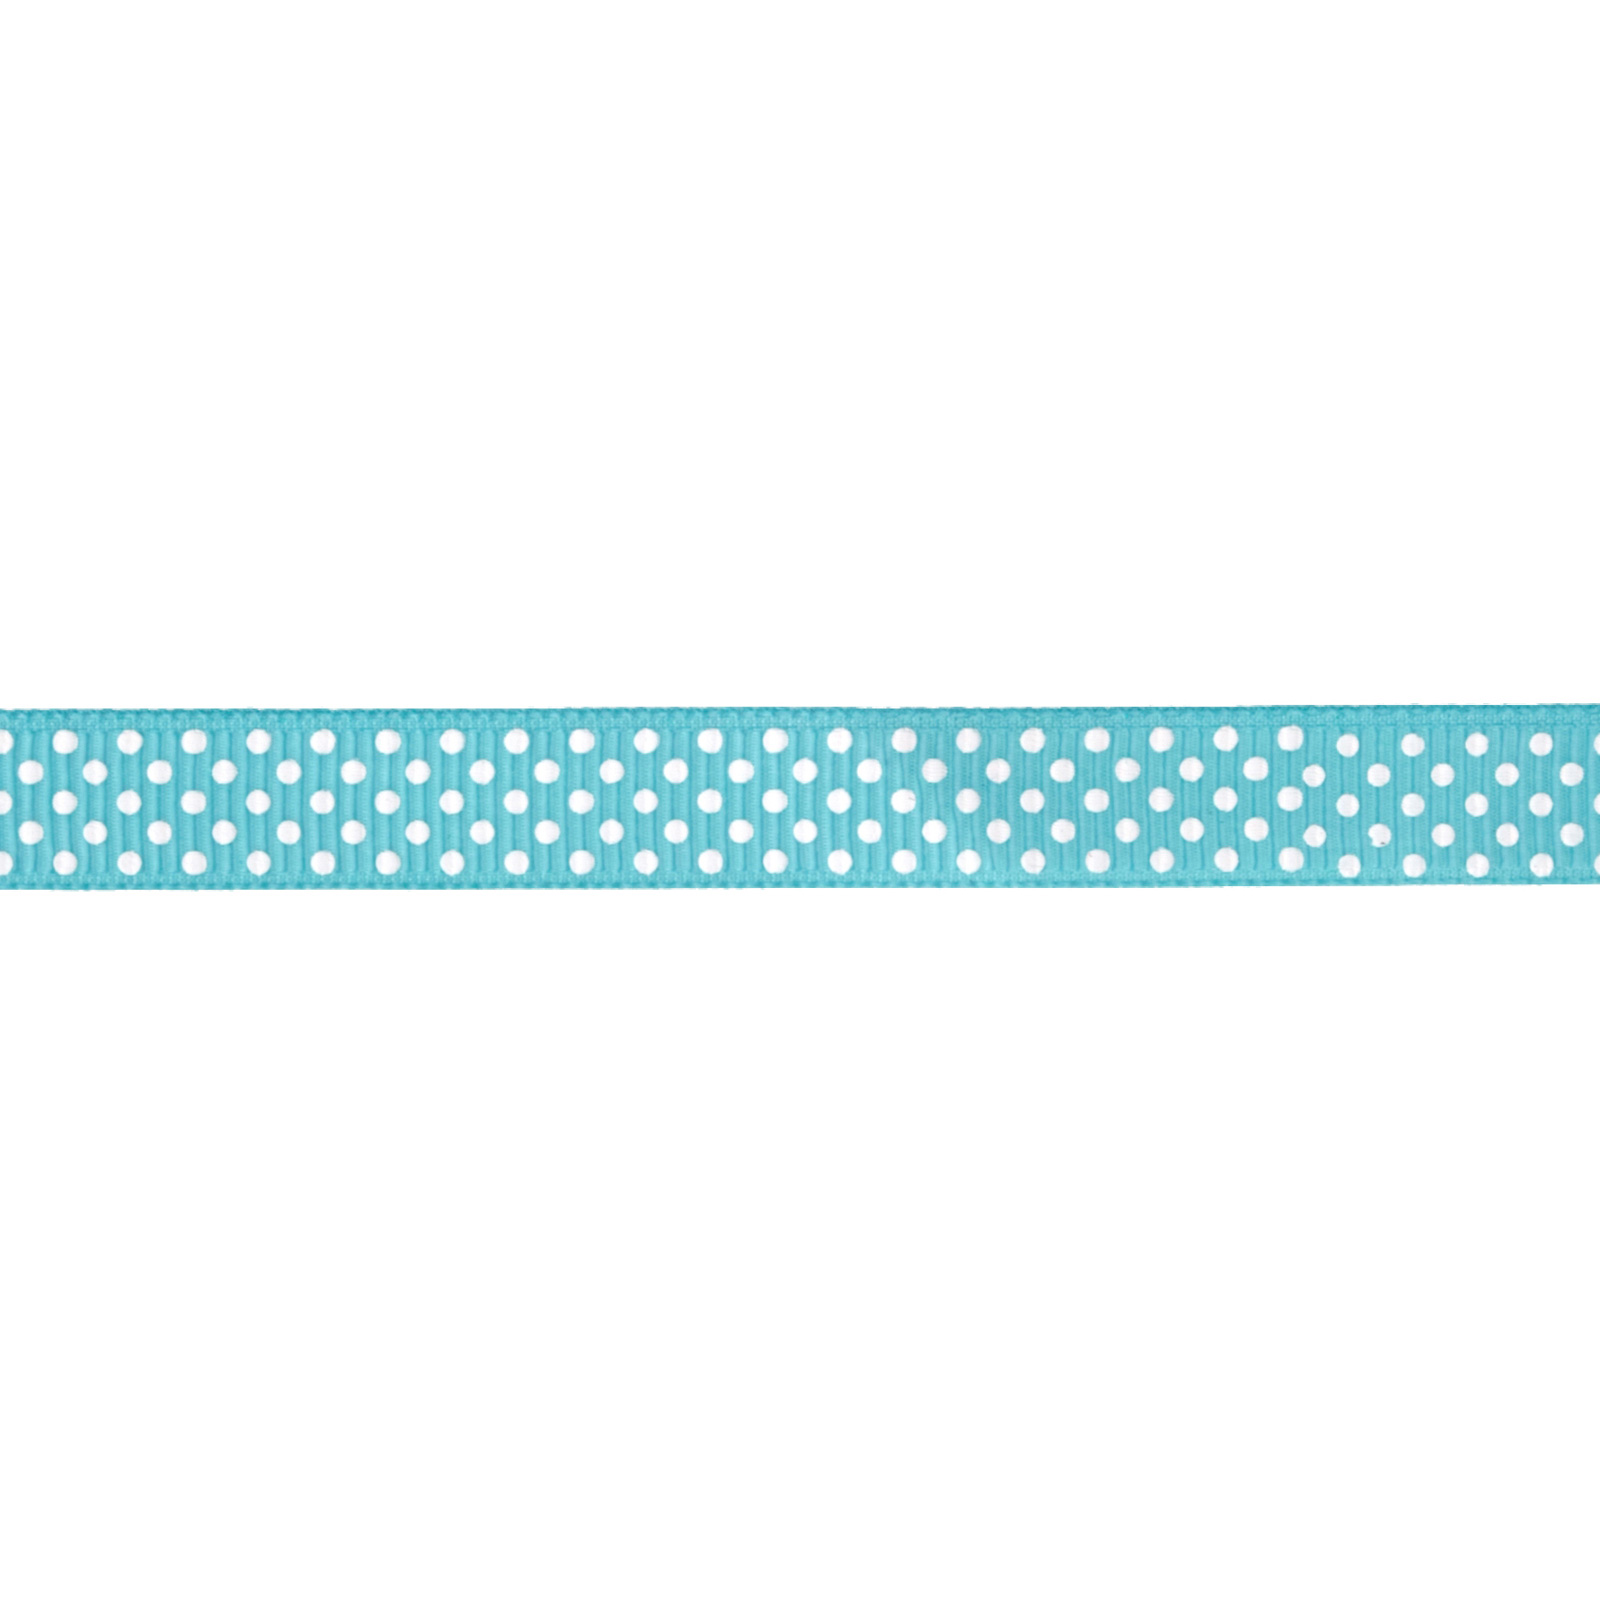 Riley Blake 3/8'' Grosgrain Ribbon White Dots Aqua